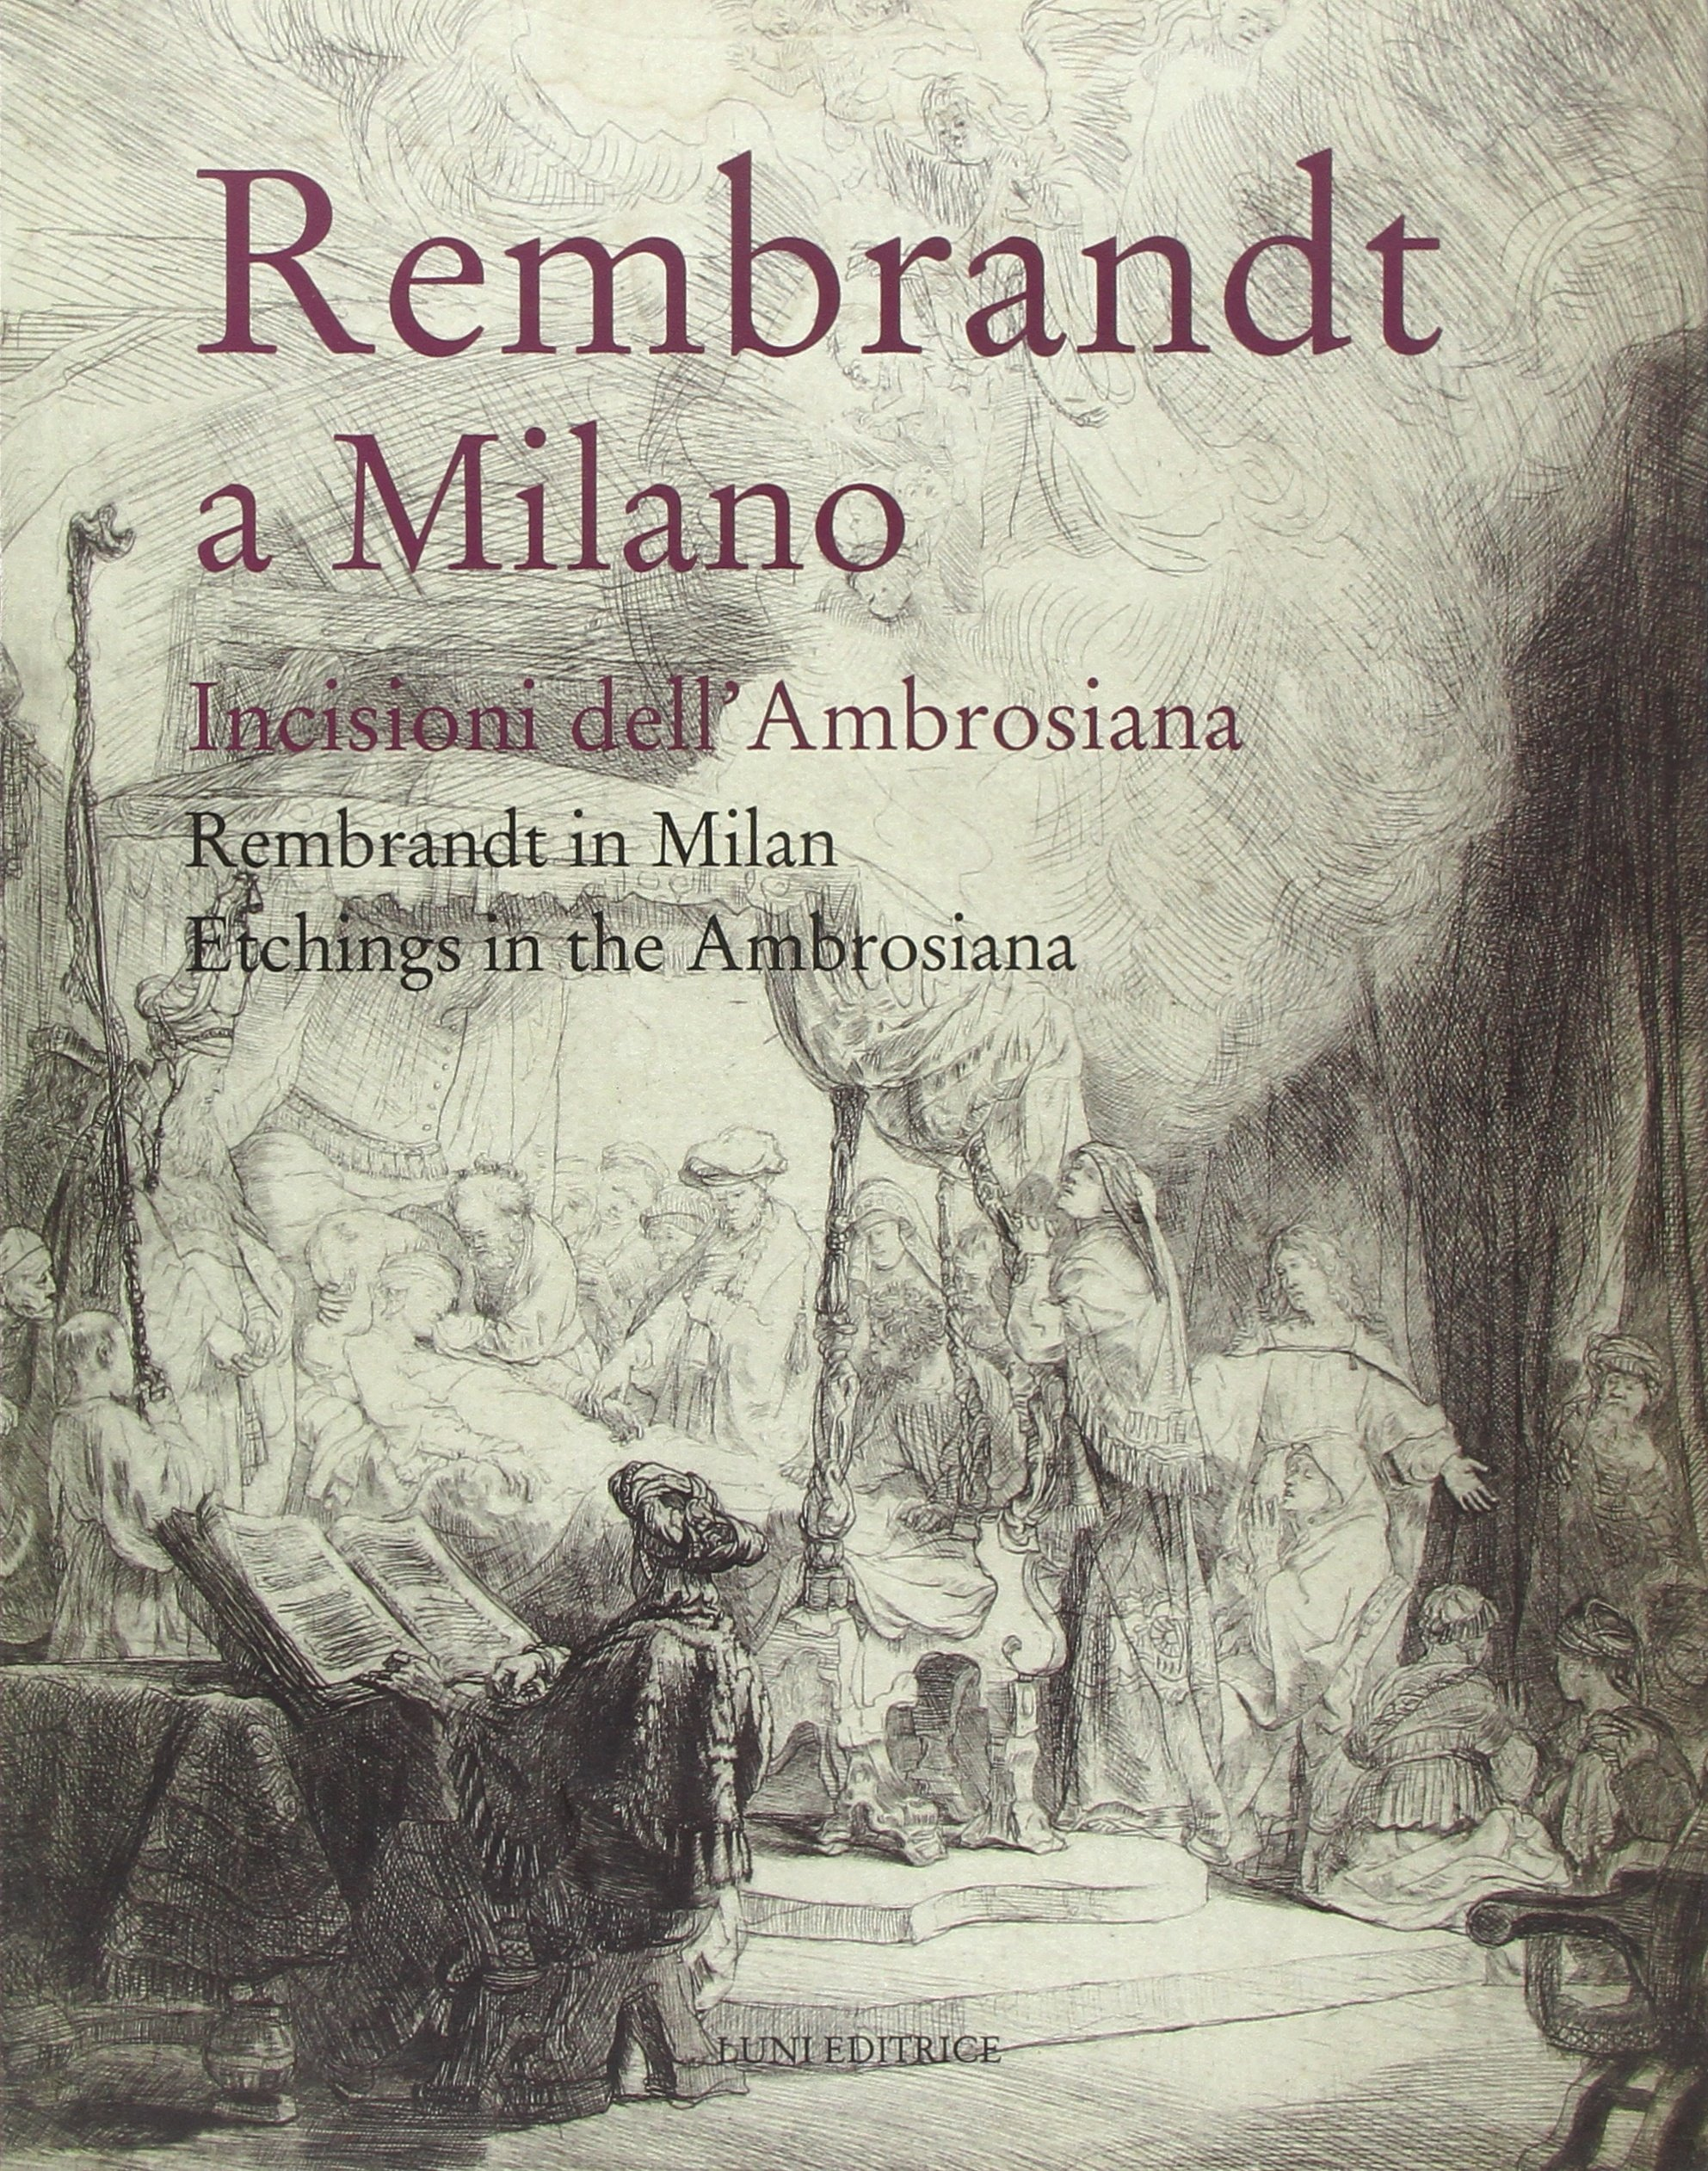 rembrandt a milano incisioni dellambrosiana rembrandt in milan etchings in the ambrosiana